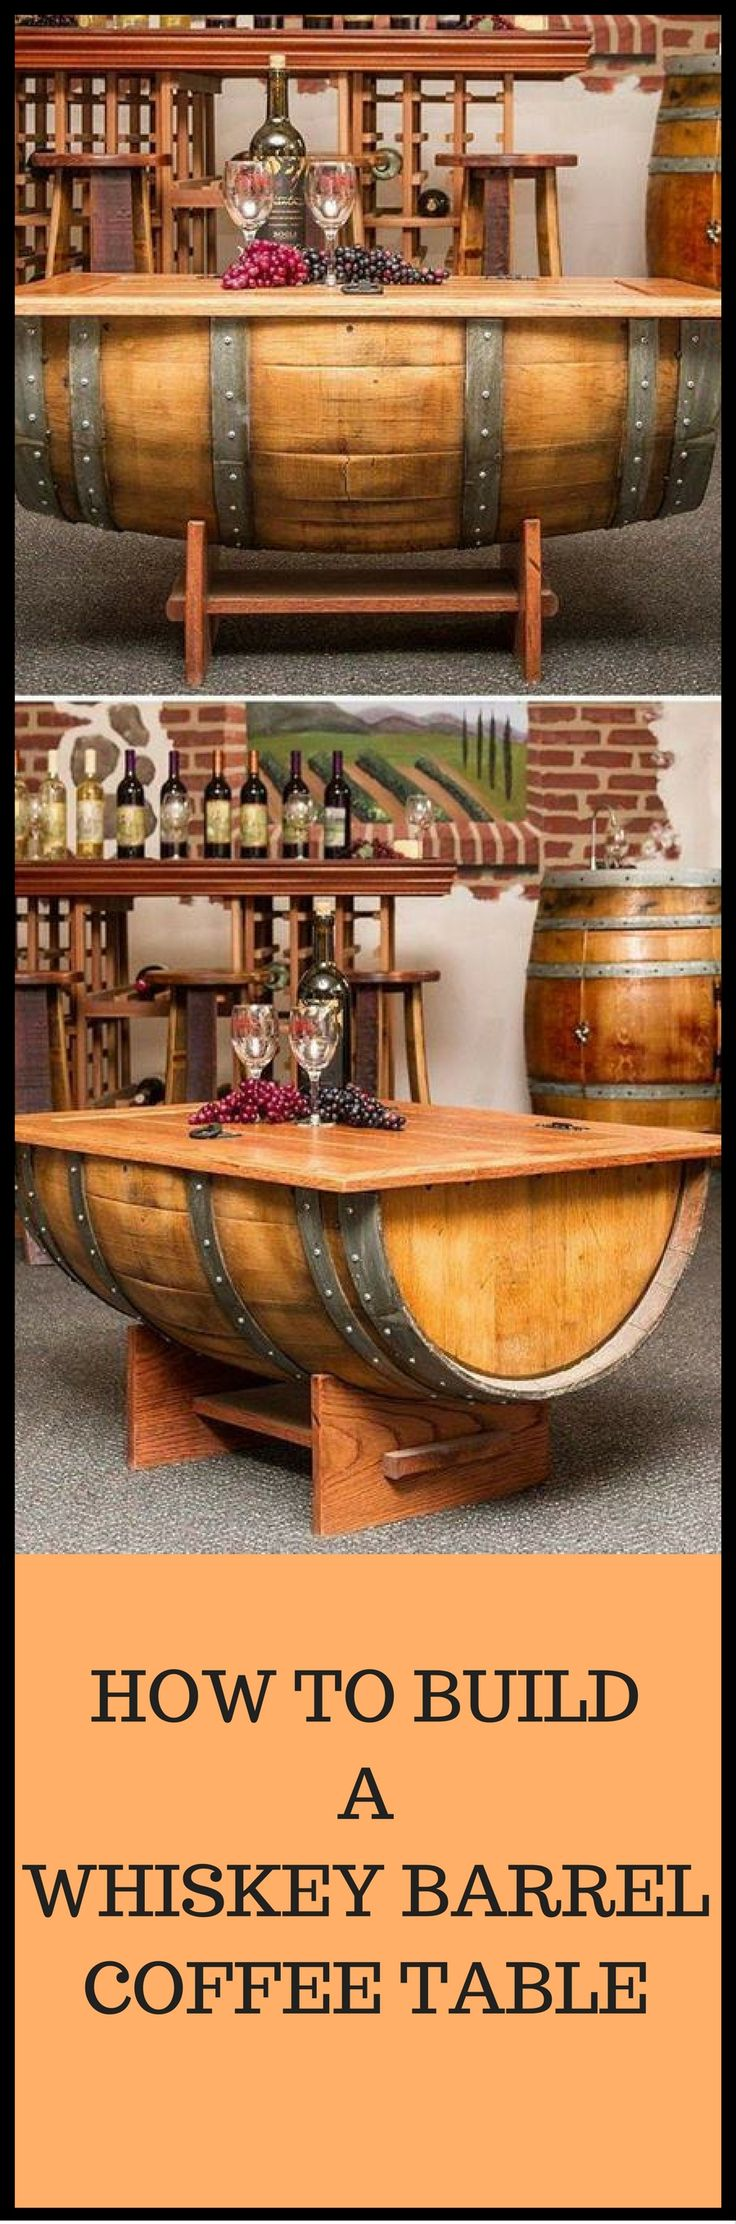 How To Build A Whiskey Barrel Coffee Table Http://vid.staged.